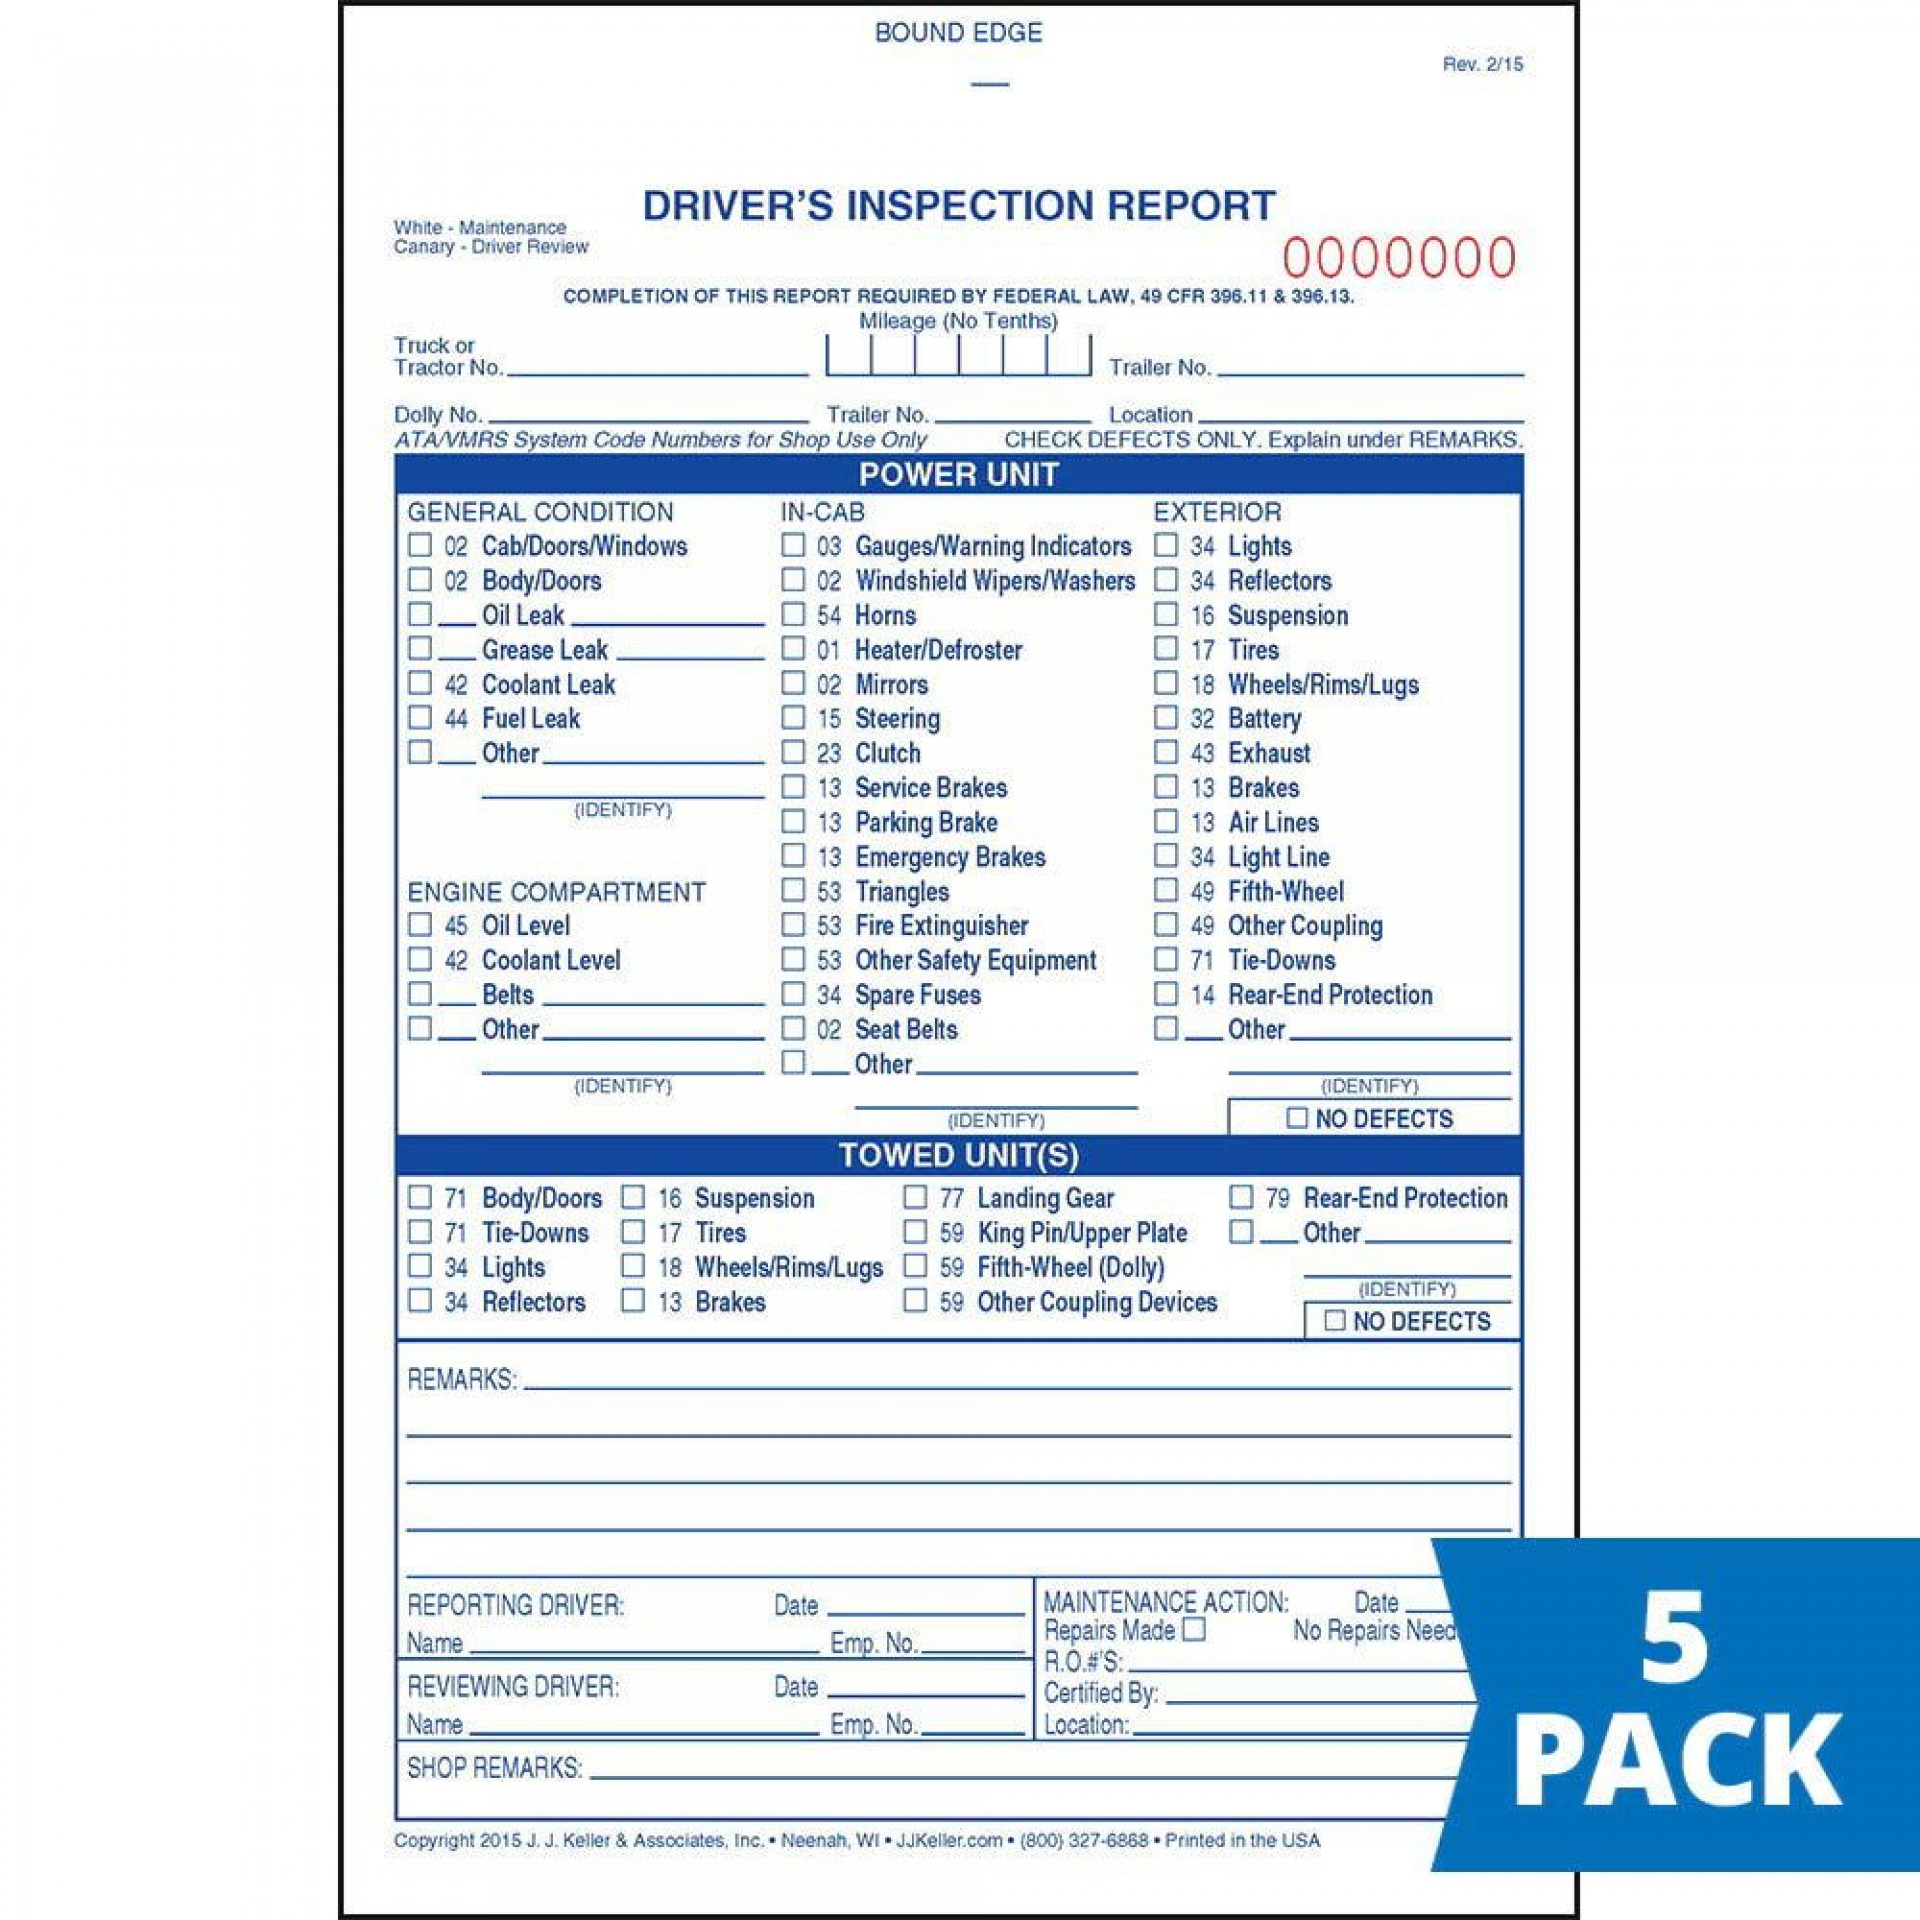 003 Shocking Driver Vehicle Inspection Report Form High Def  Free Driver' Template Downloadable Printable1920